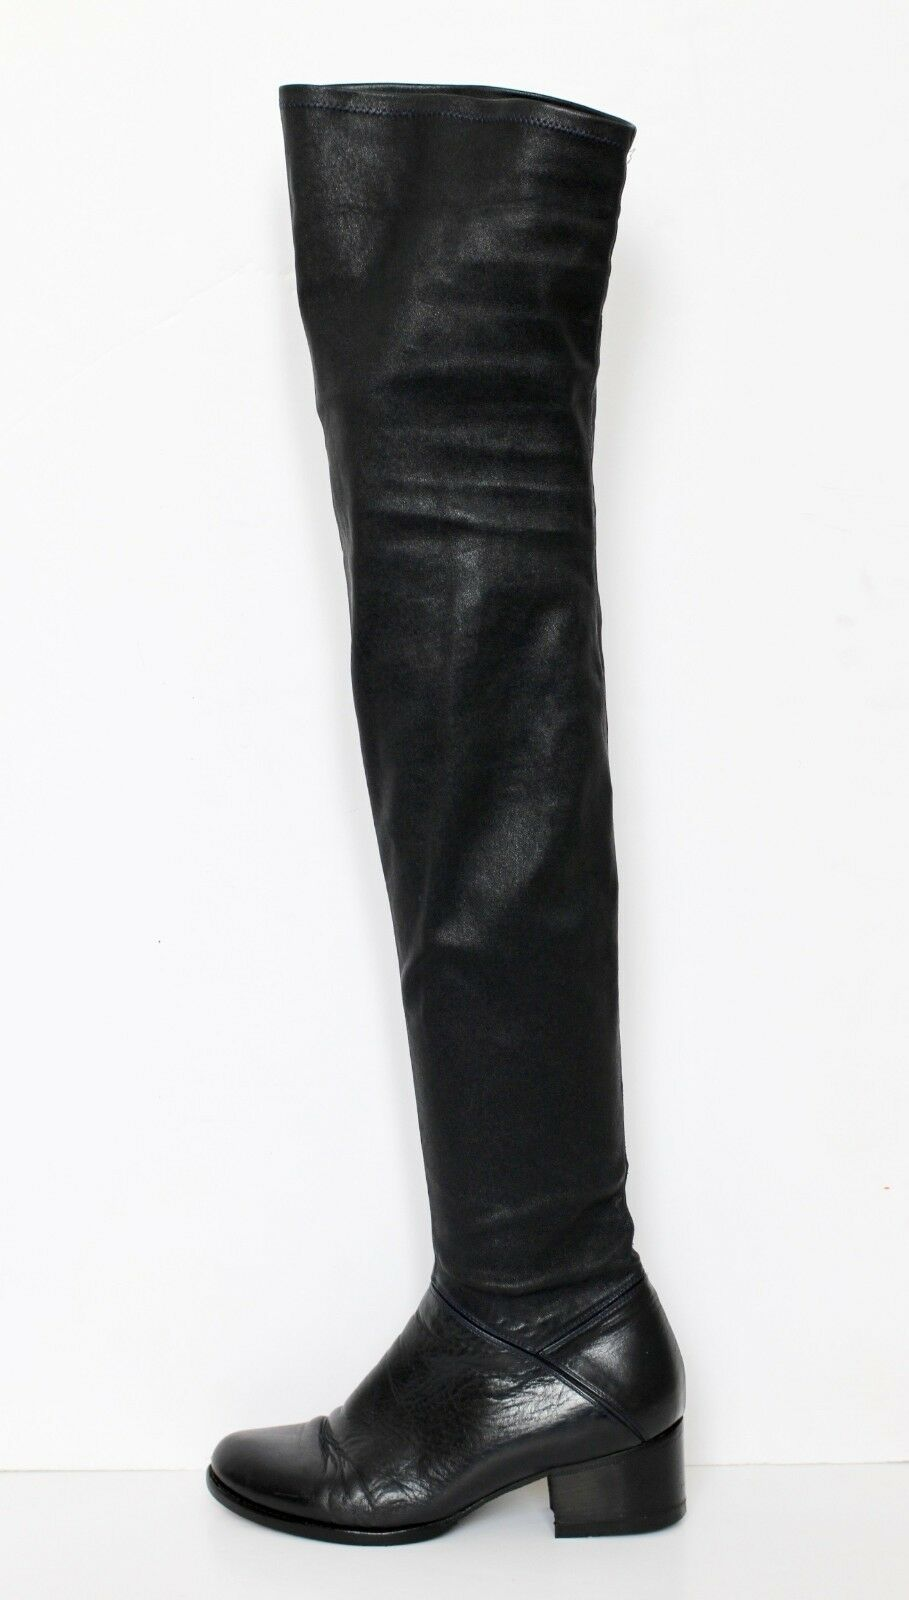 VANESSA BRUNO black leather over the knee boots IT37 UK4.5 US7 RRP